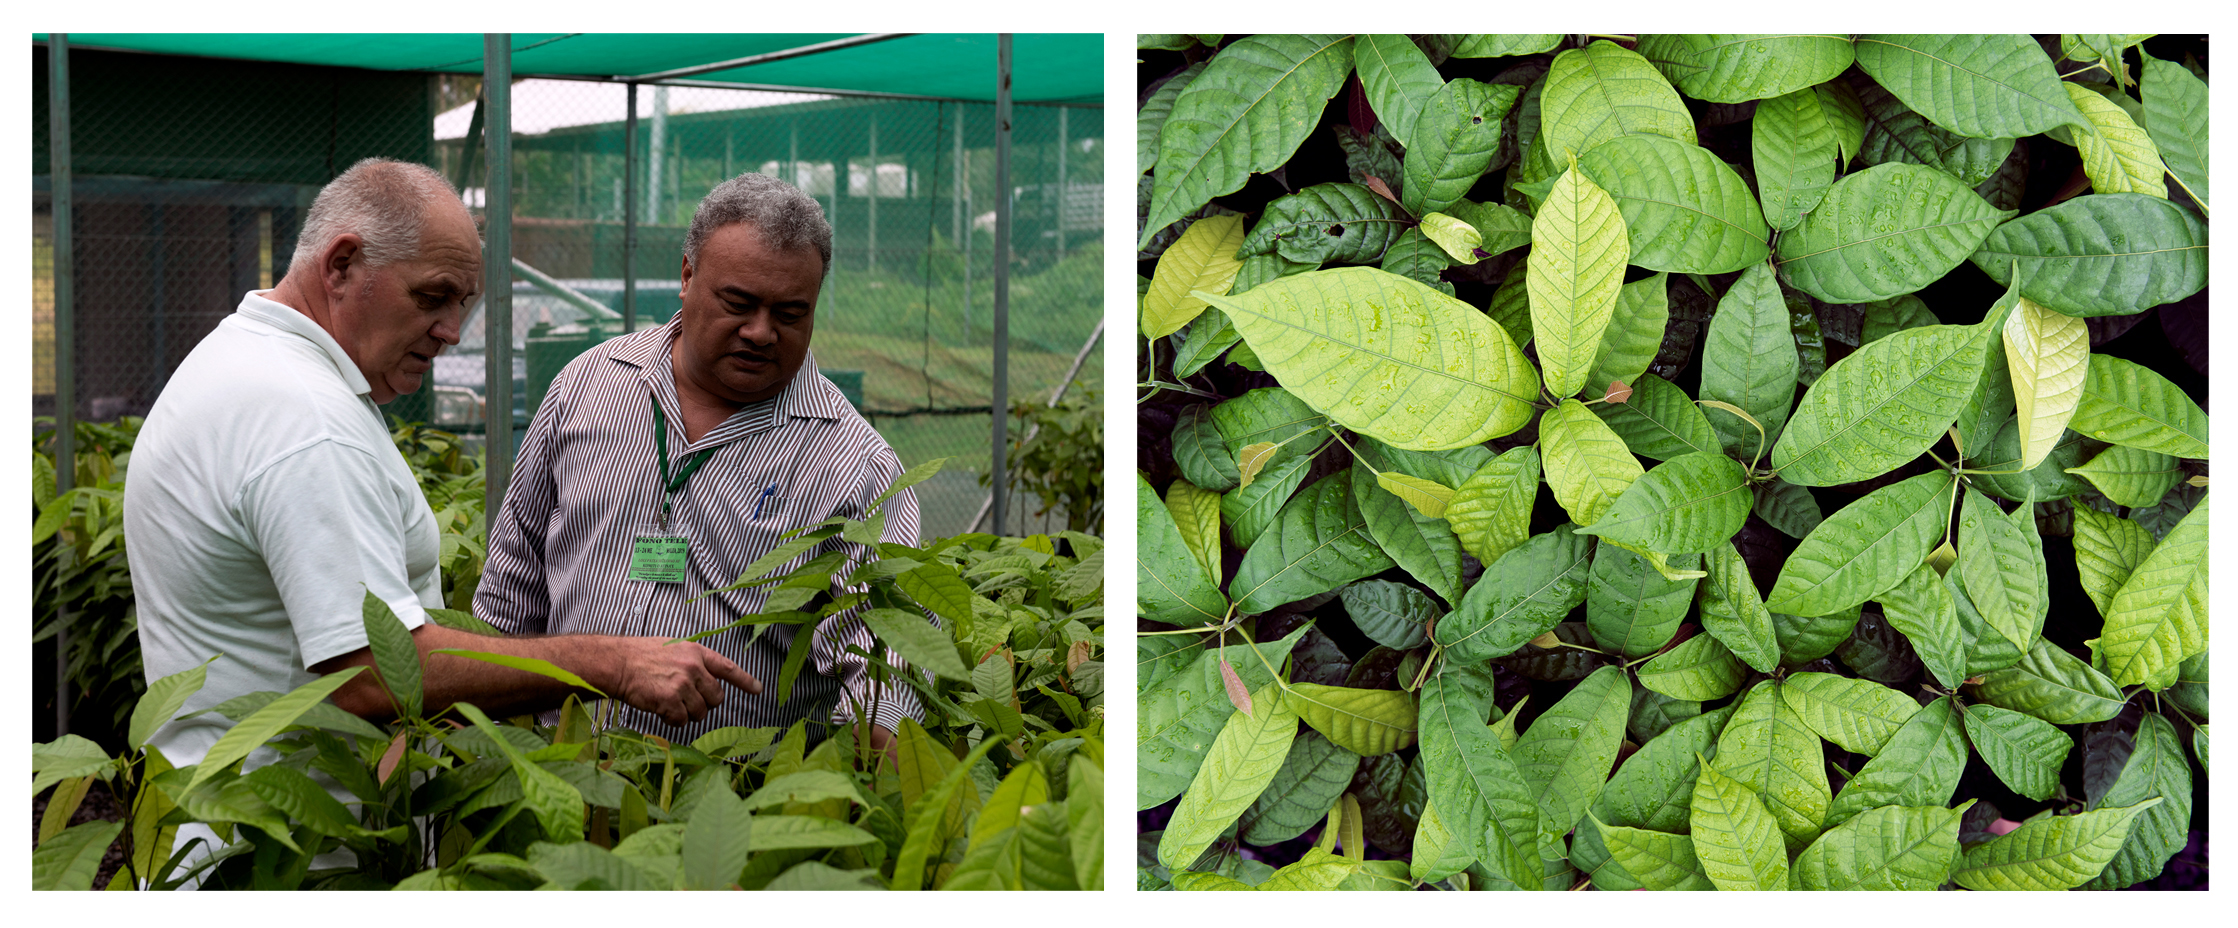 STEC CEO Patea Loli Malo Setefano & Dr. Nick Roskruge from Massey University inspect seedlings